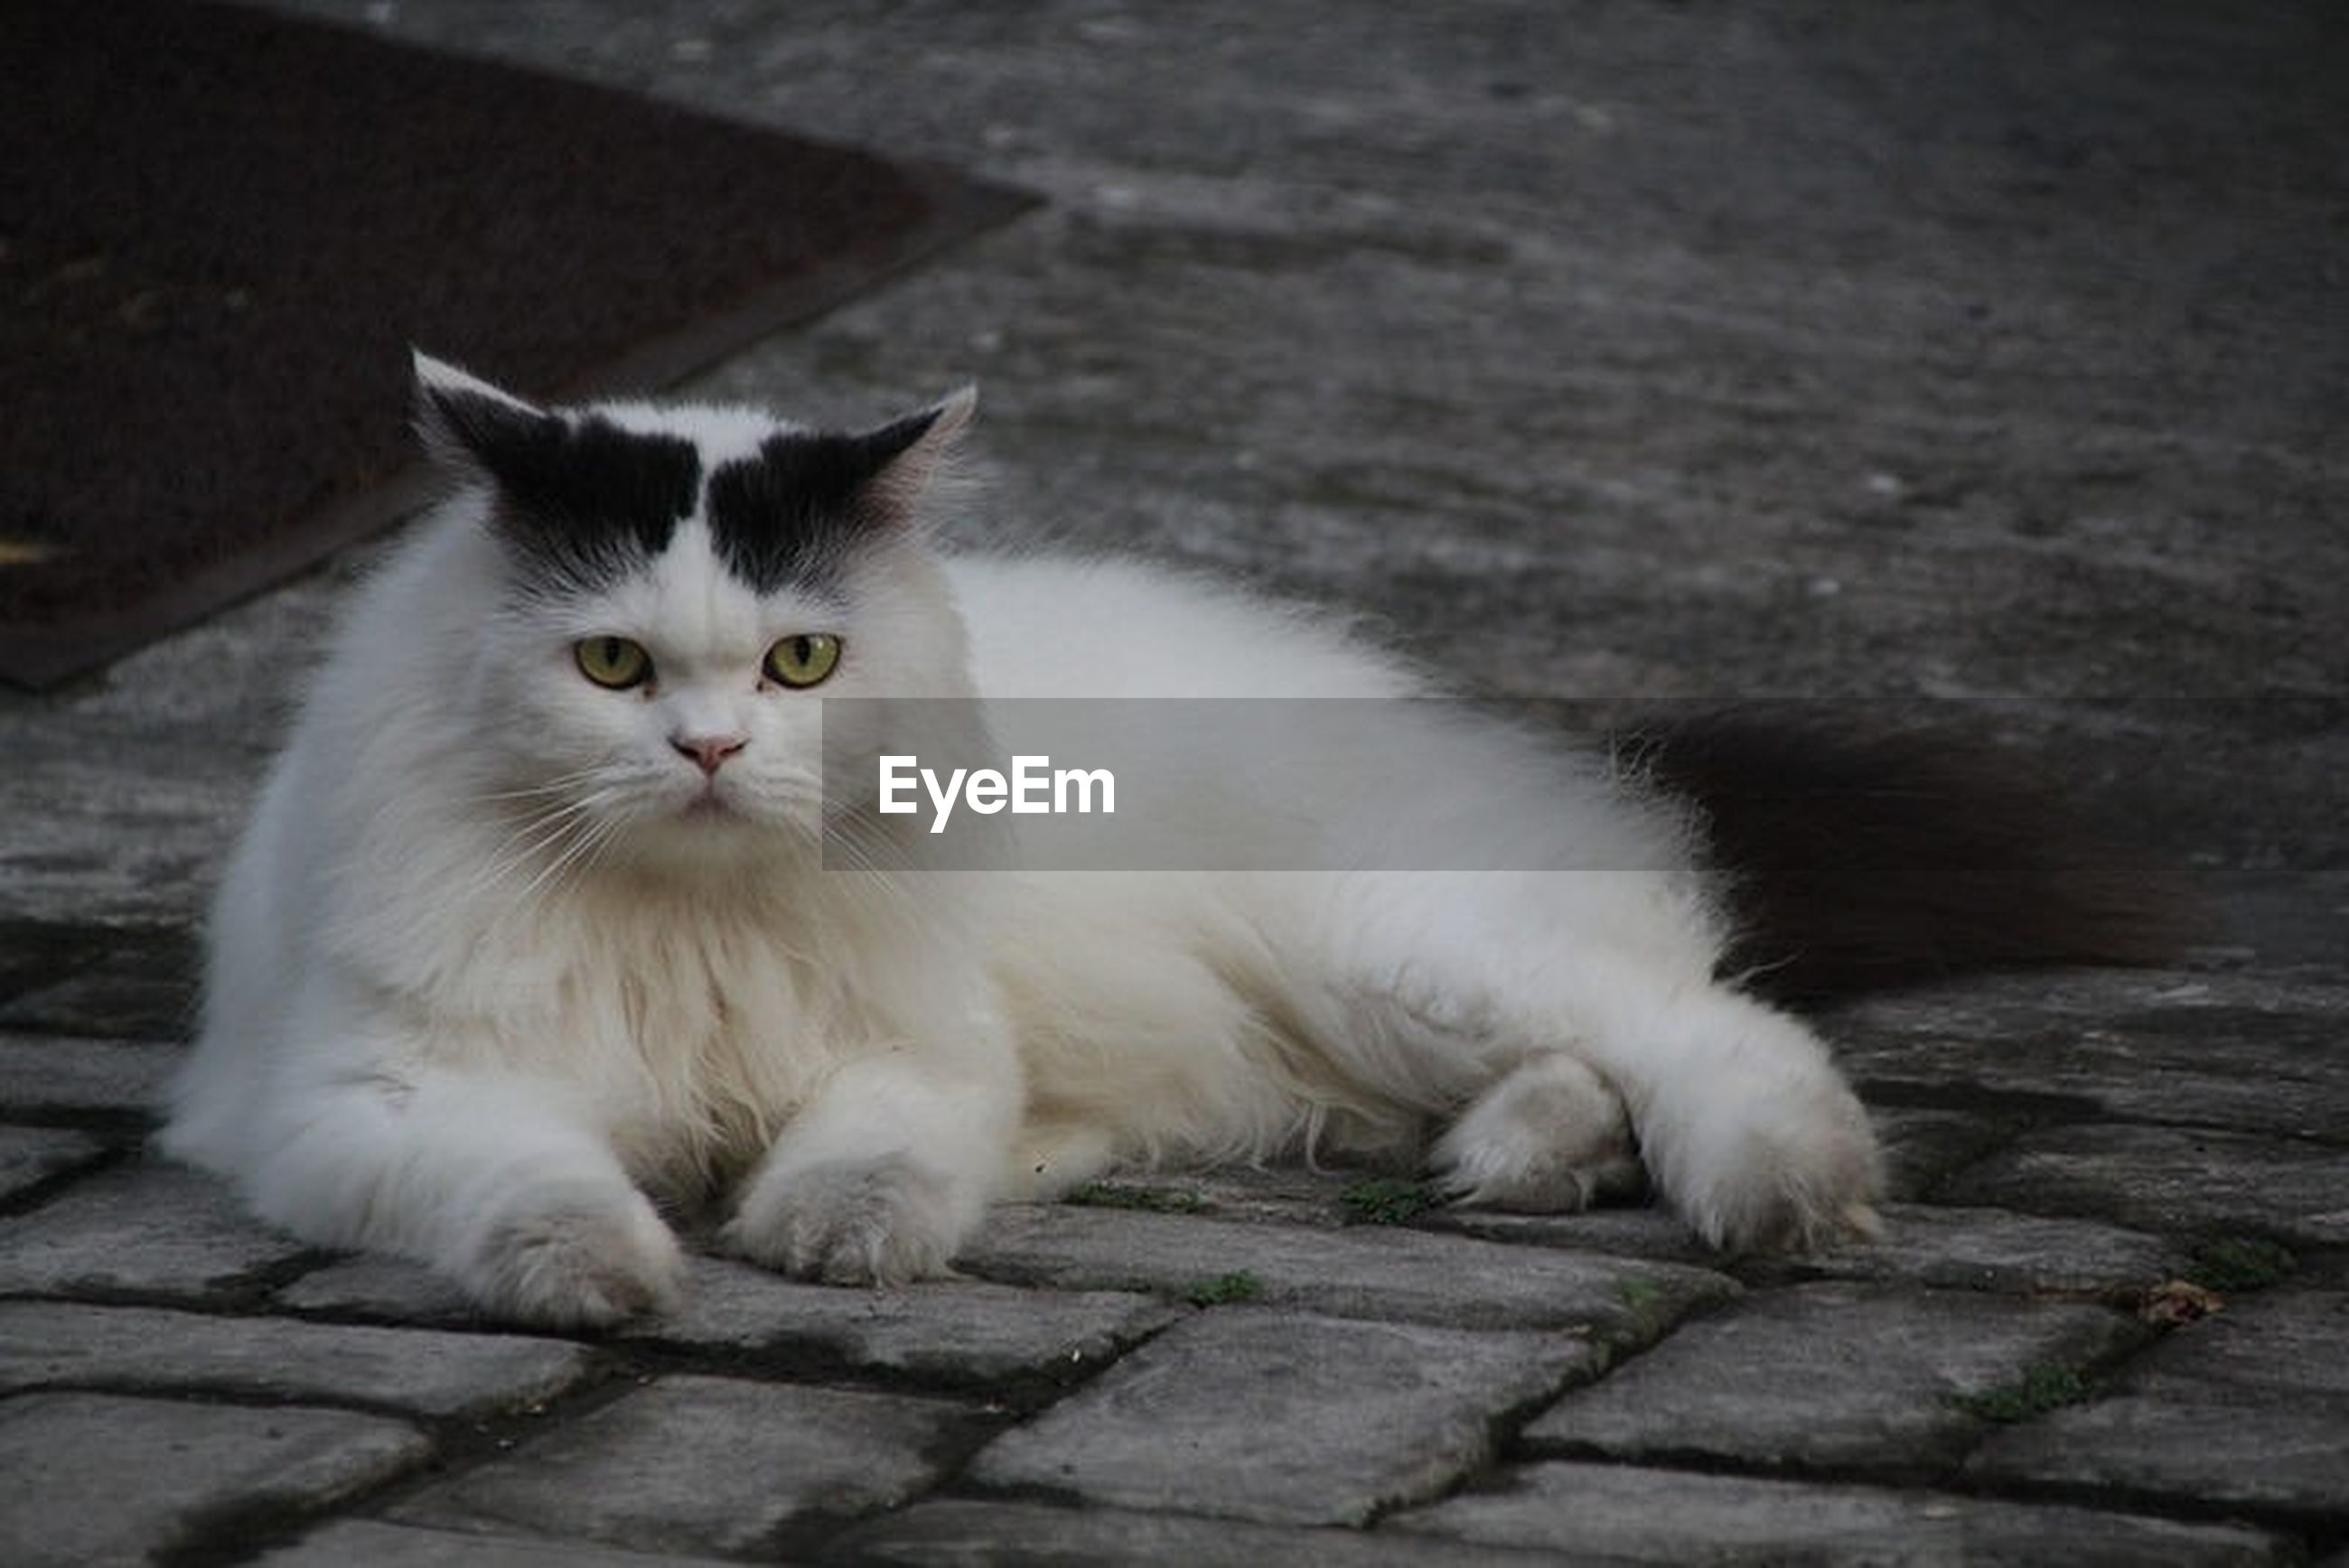 cat, domestic, pets, domestic cat, feline, domestic animals, mammal, one animal, vertebrate, portrait, relaxation, no people, looking at camera, white color, sitting, whisker, footpath, animal eye